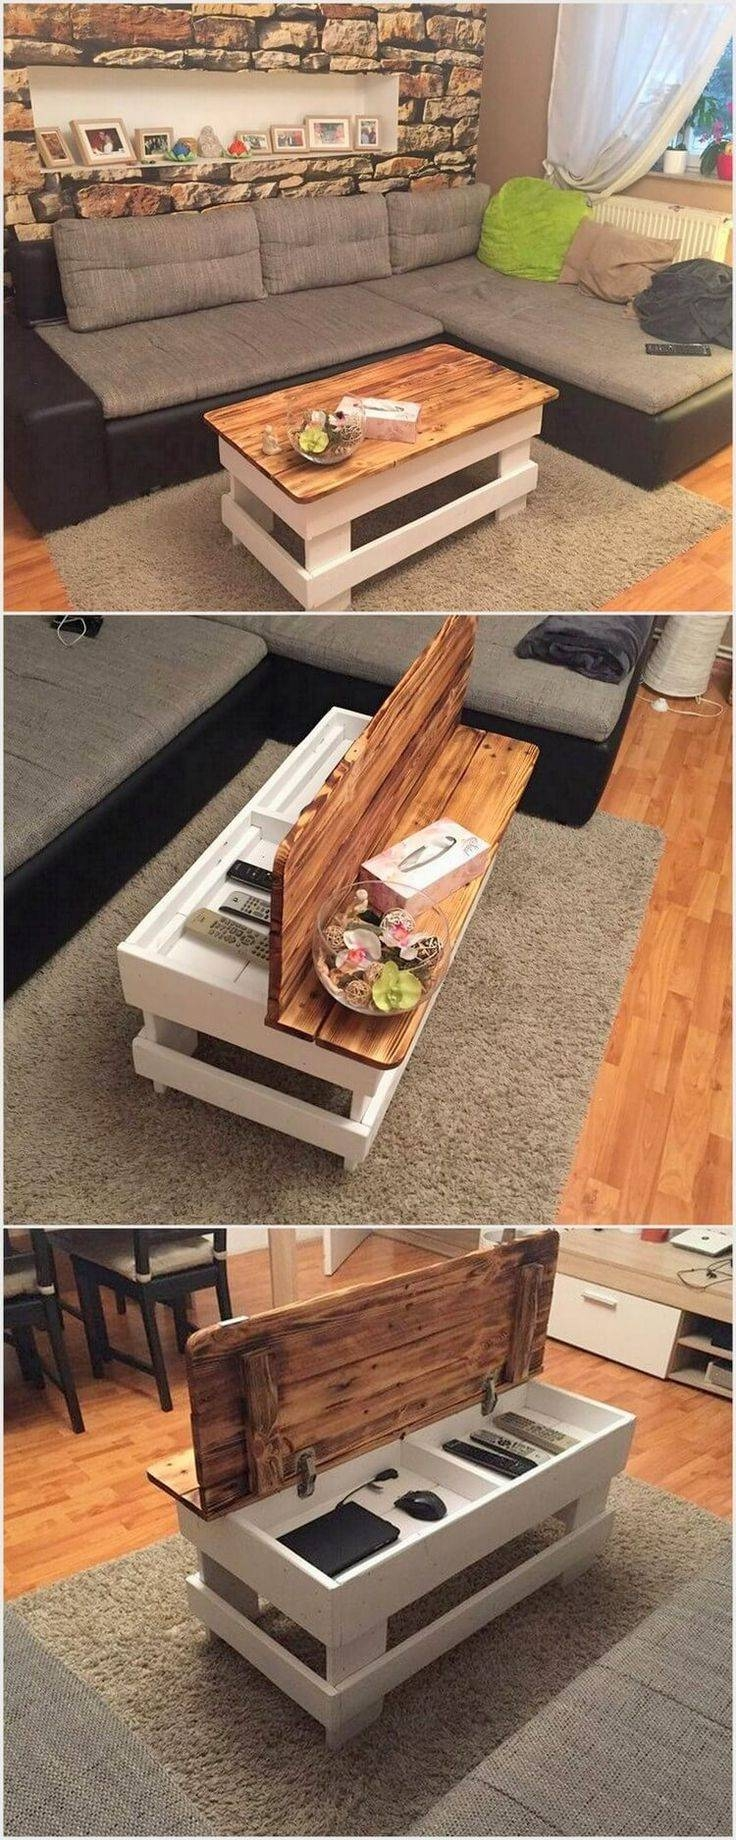 Best 25+ Coffee Table With Storage Ideas Only On Pinterest intended for Wooden Coffee Tables With Storage (Image 3 of 30)